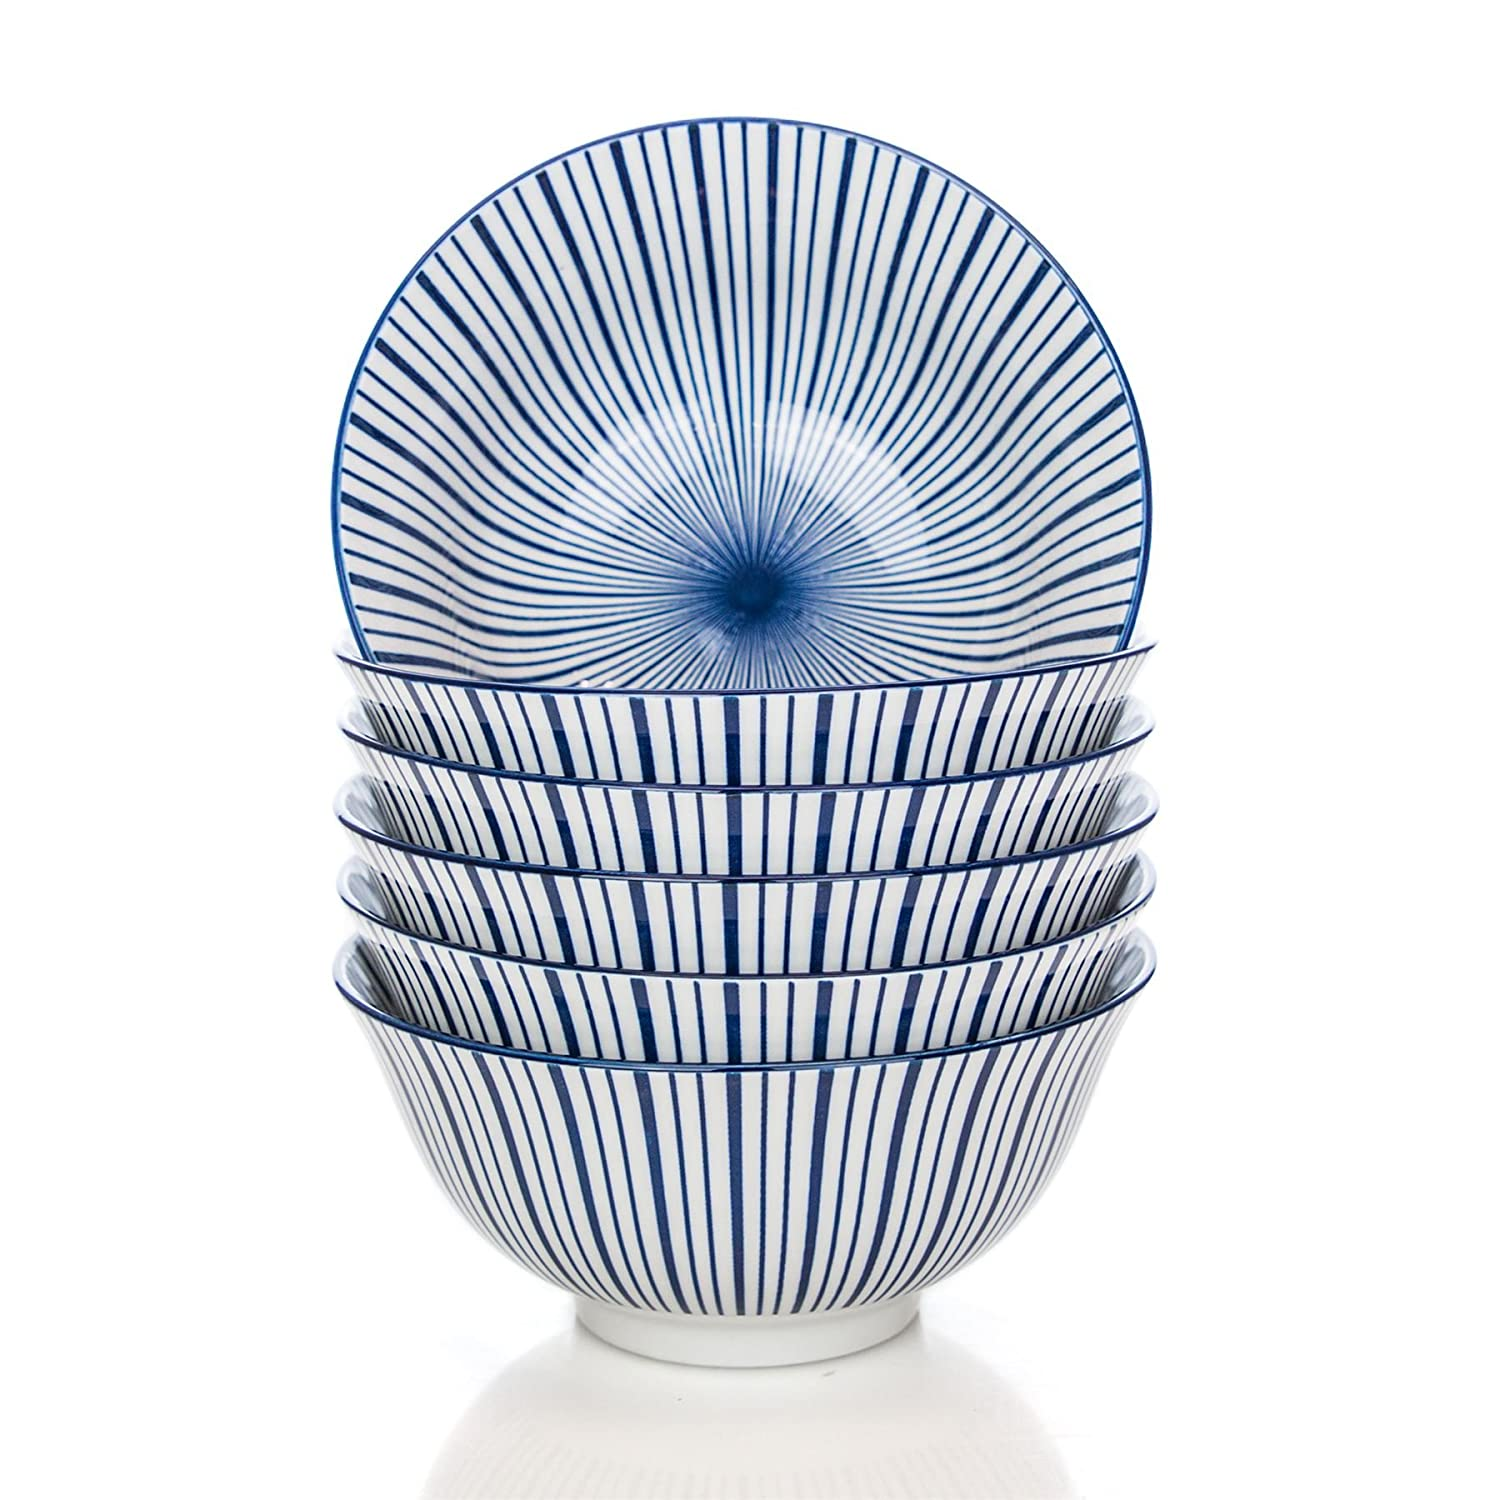 Stripe Design Patterned Porcelain Cereal Bowls - Blue / White - 153mm (6 Inches) - Pack of 6 Nicola Spring